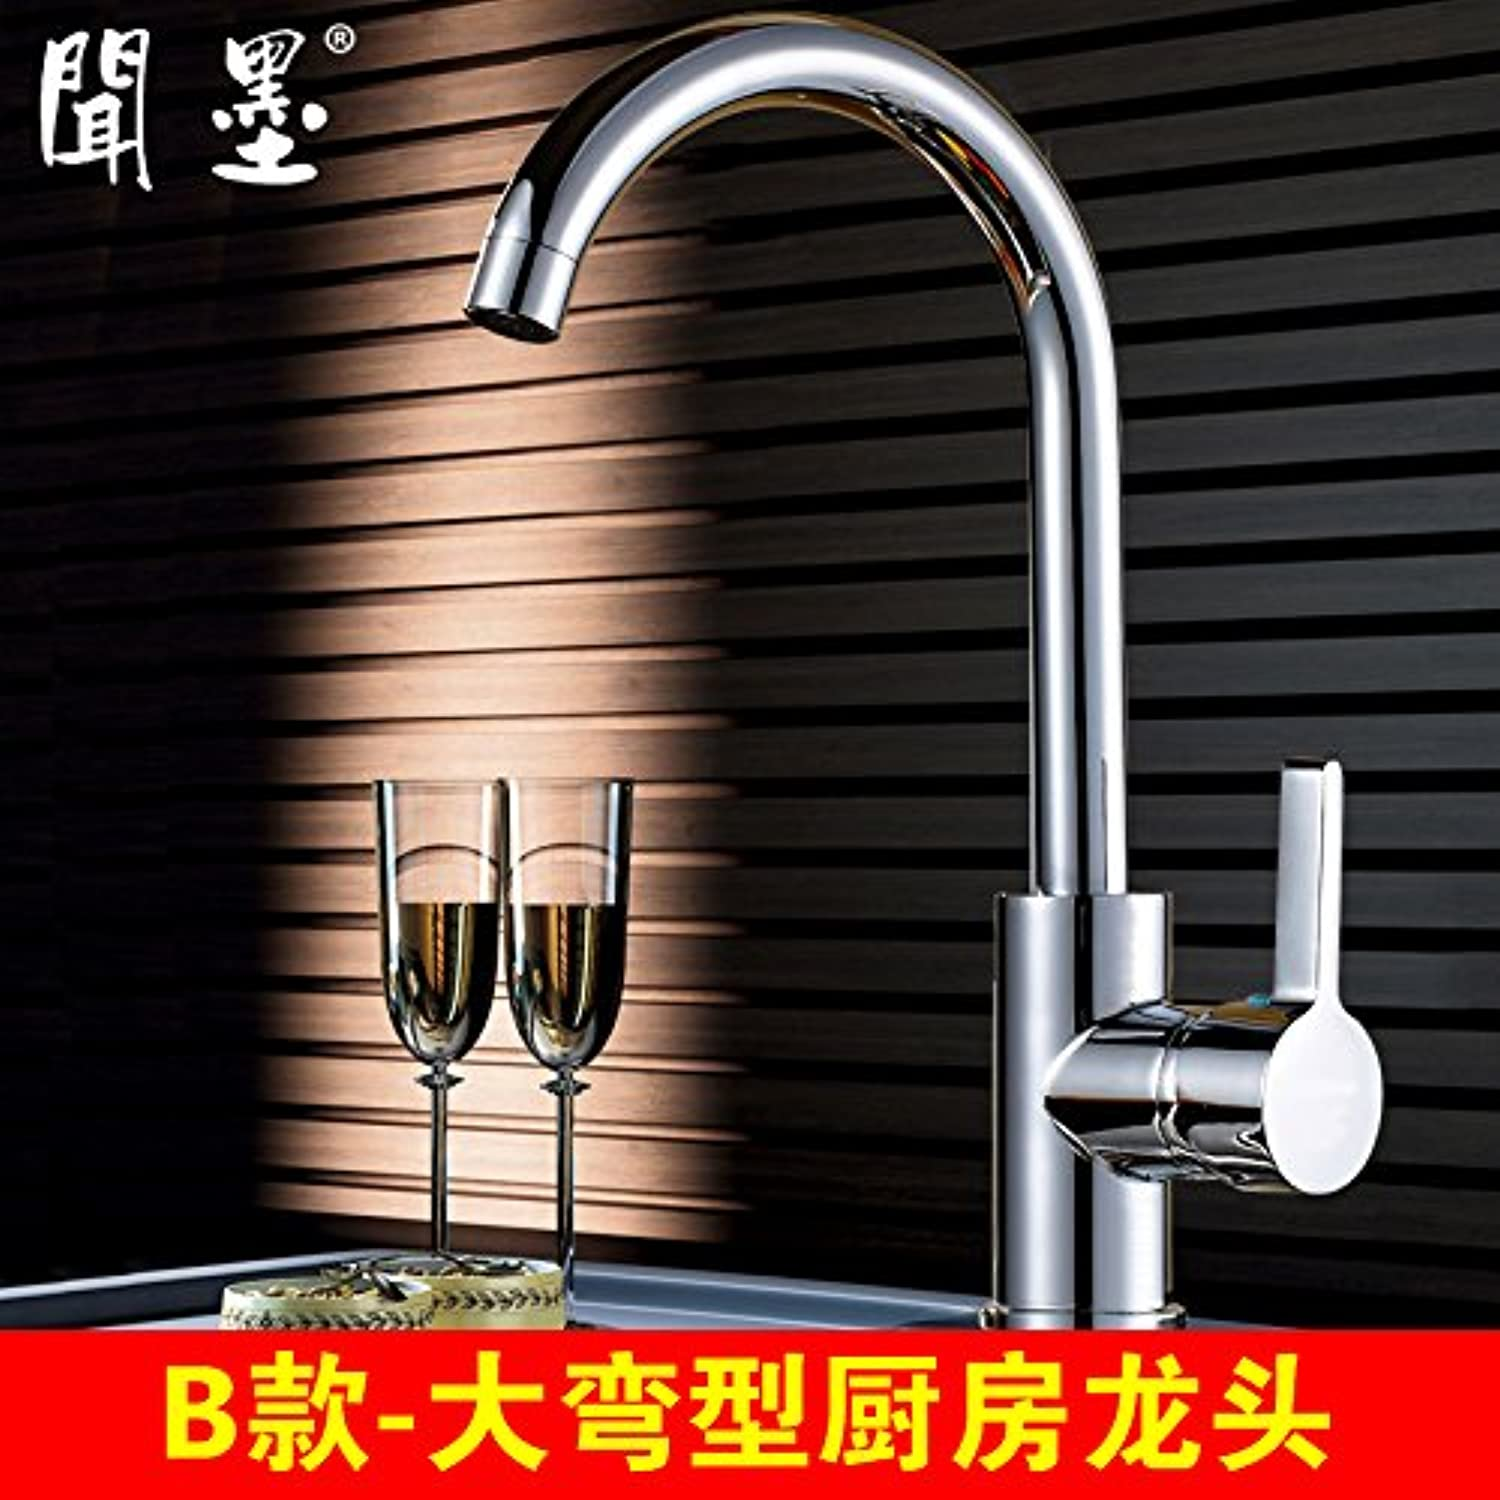 Gyps Faucet Single Lever Washbasin Mixer Tap Bathroom Faucet Copper Kitchen Tap Hot and Cold Plates Dishes Sink Tap 360 redation B Large Curved